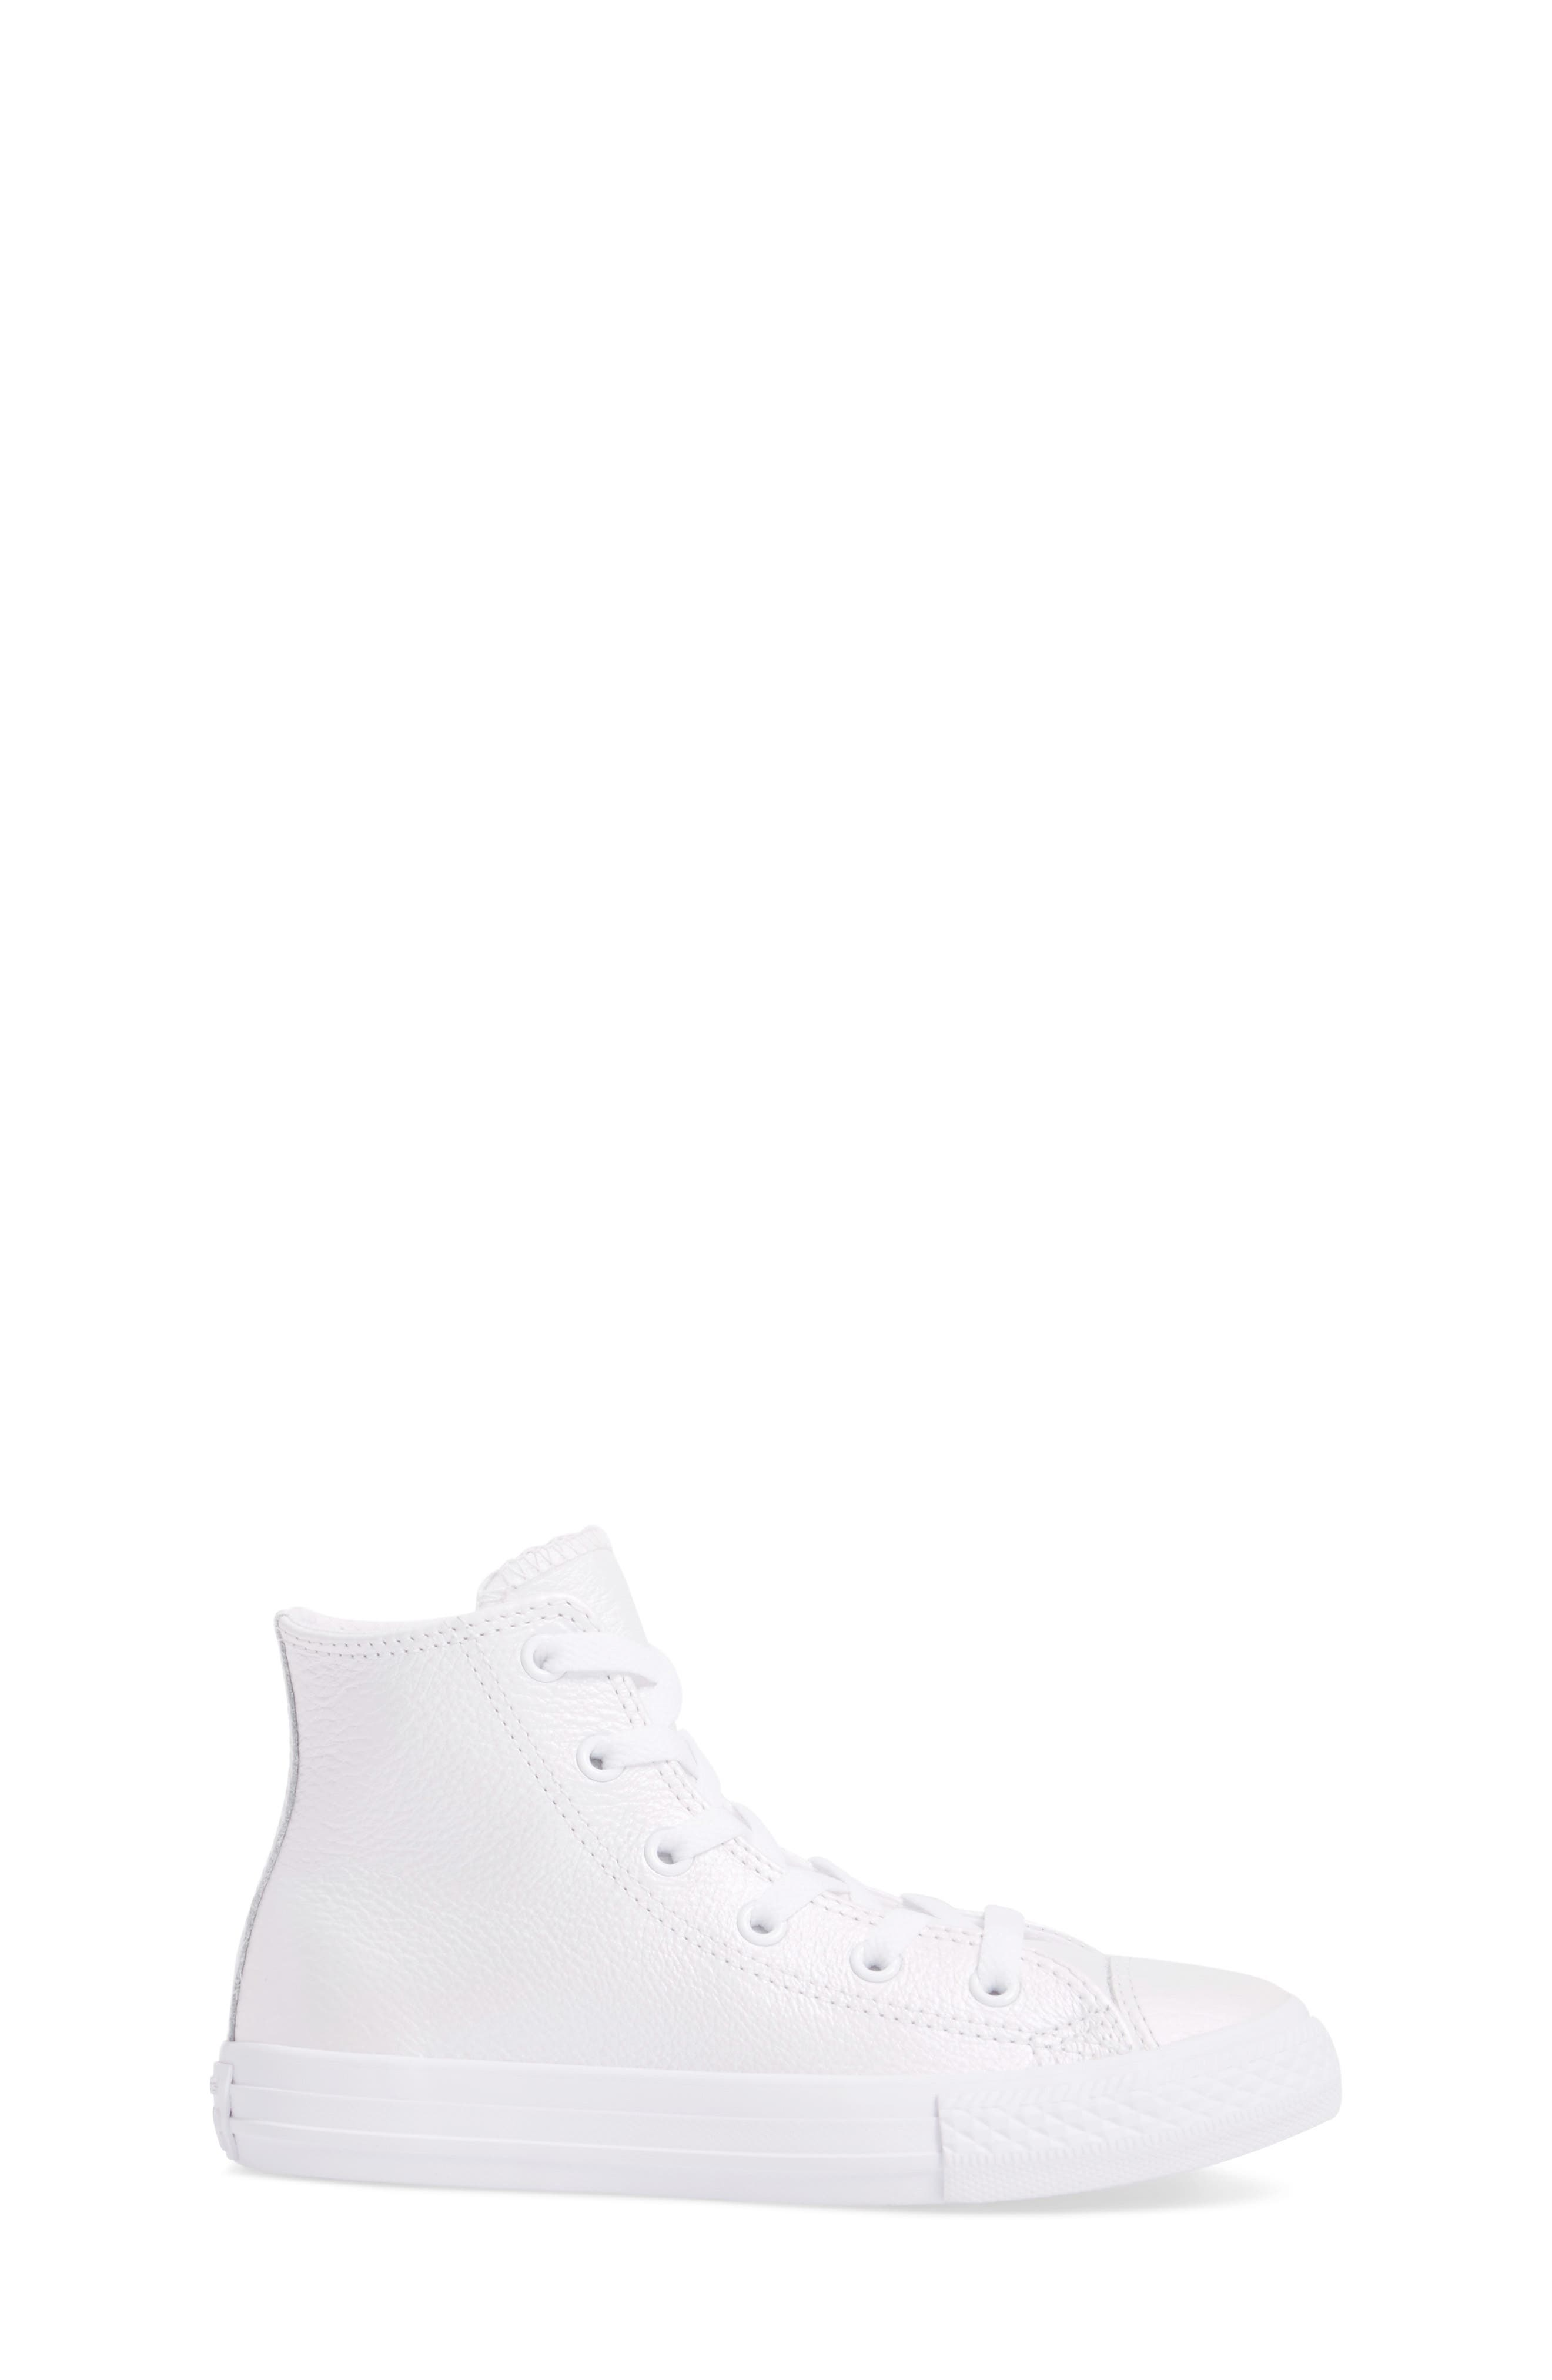 Chuck Taylor<sup>®</sup> All Star<sup>®</sup> Iridescent Leather High Top Sneaker,                             Alternate thumbnail 5, color,